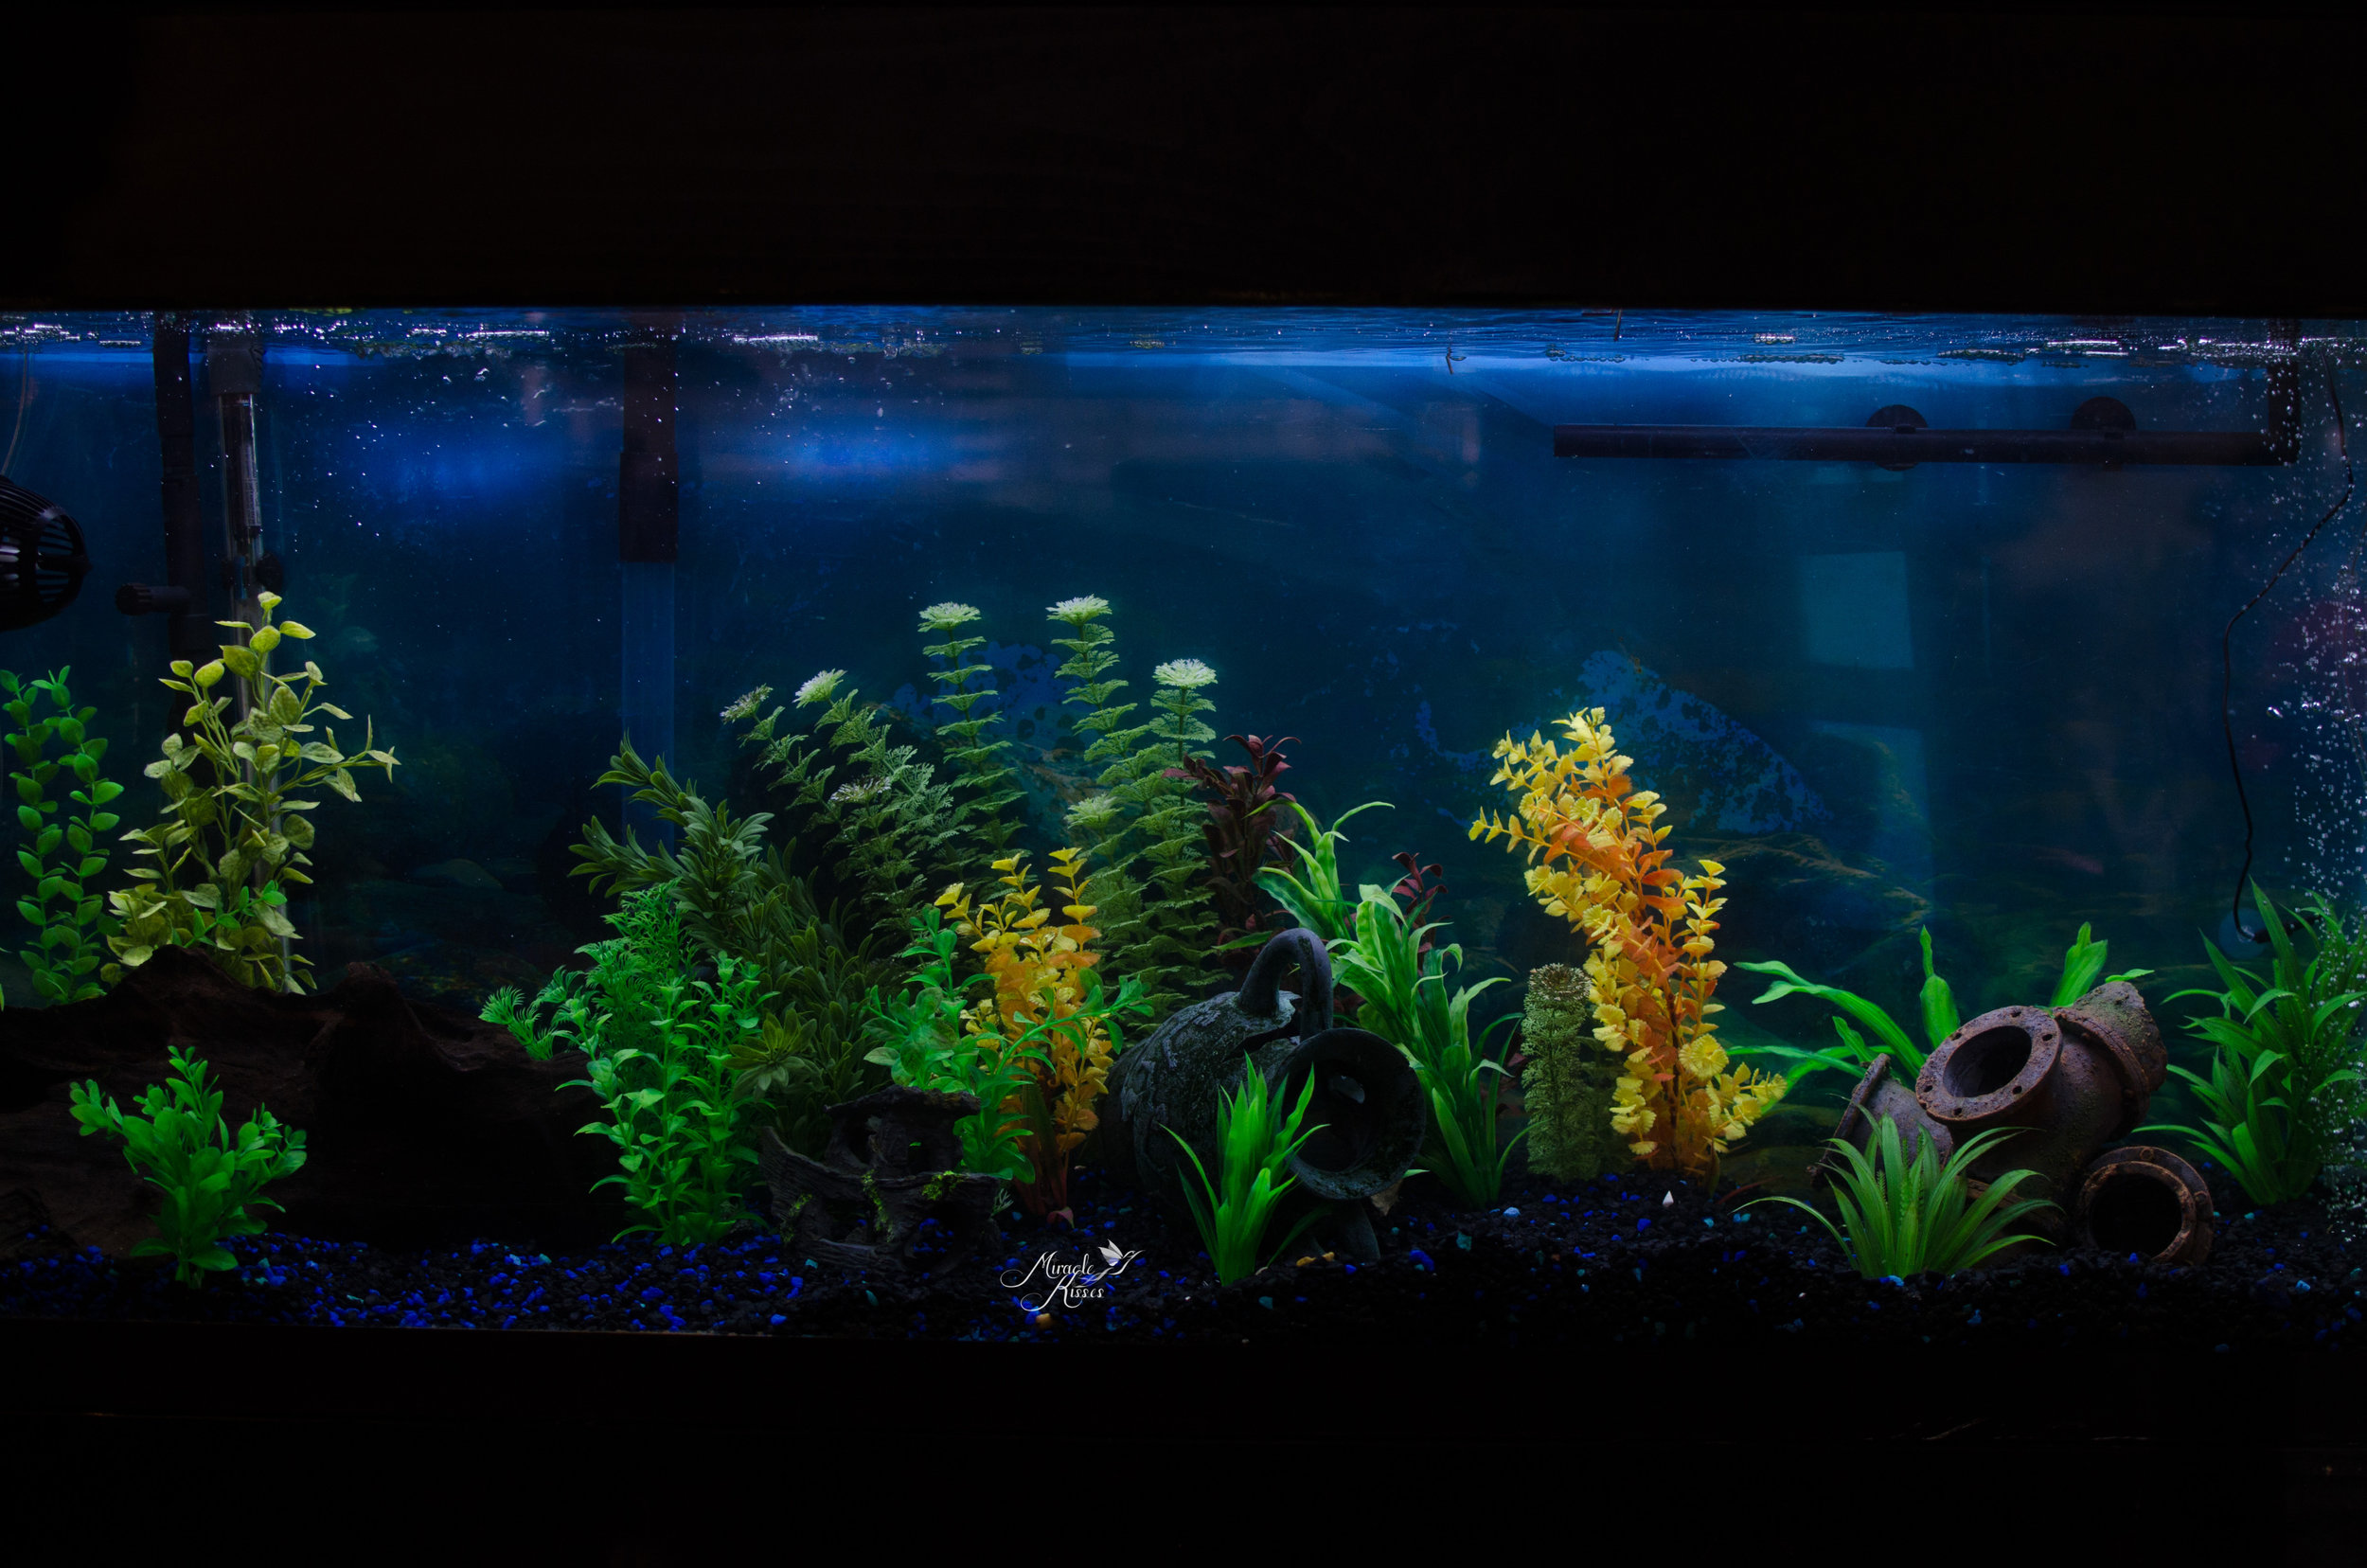 crisp, clean fish tank, blue lights